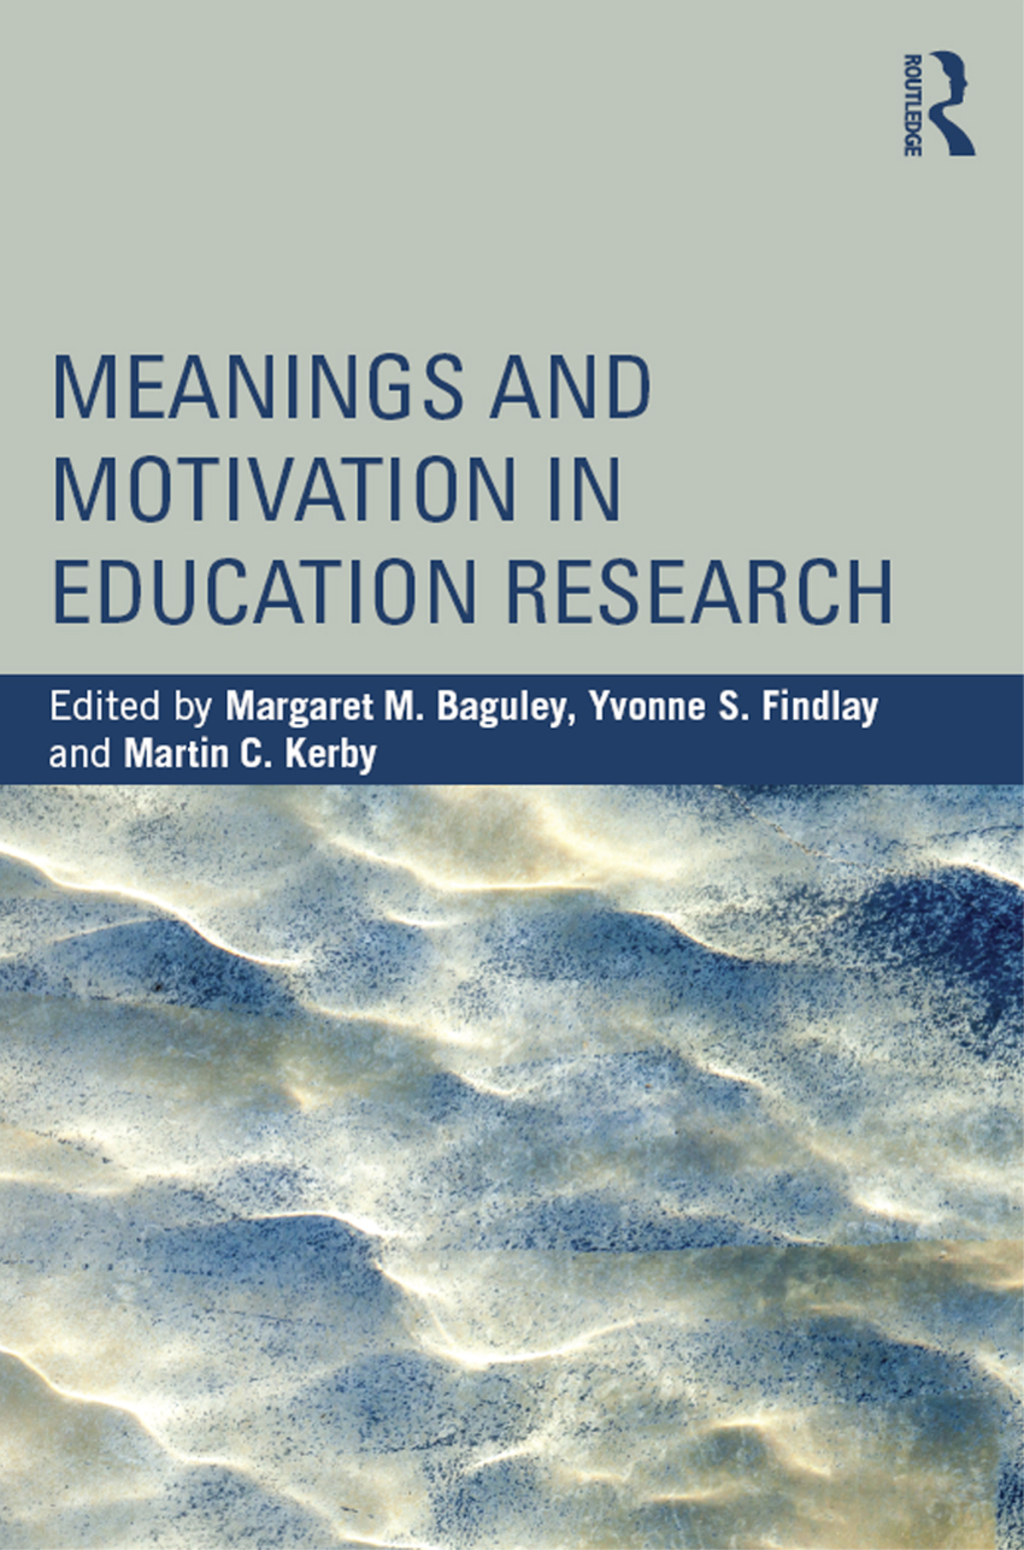 Meanings and Motivation in Education Research (ebook) eBooks